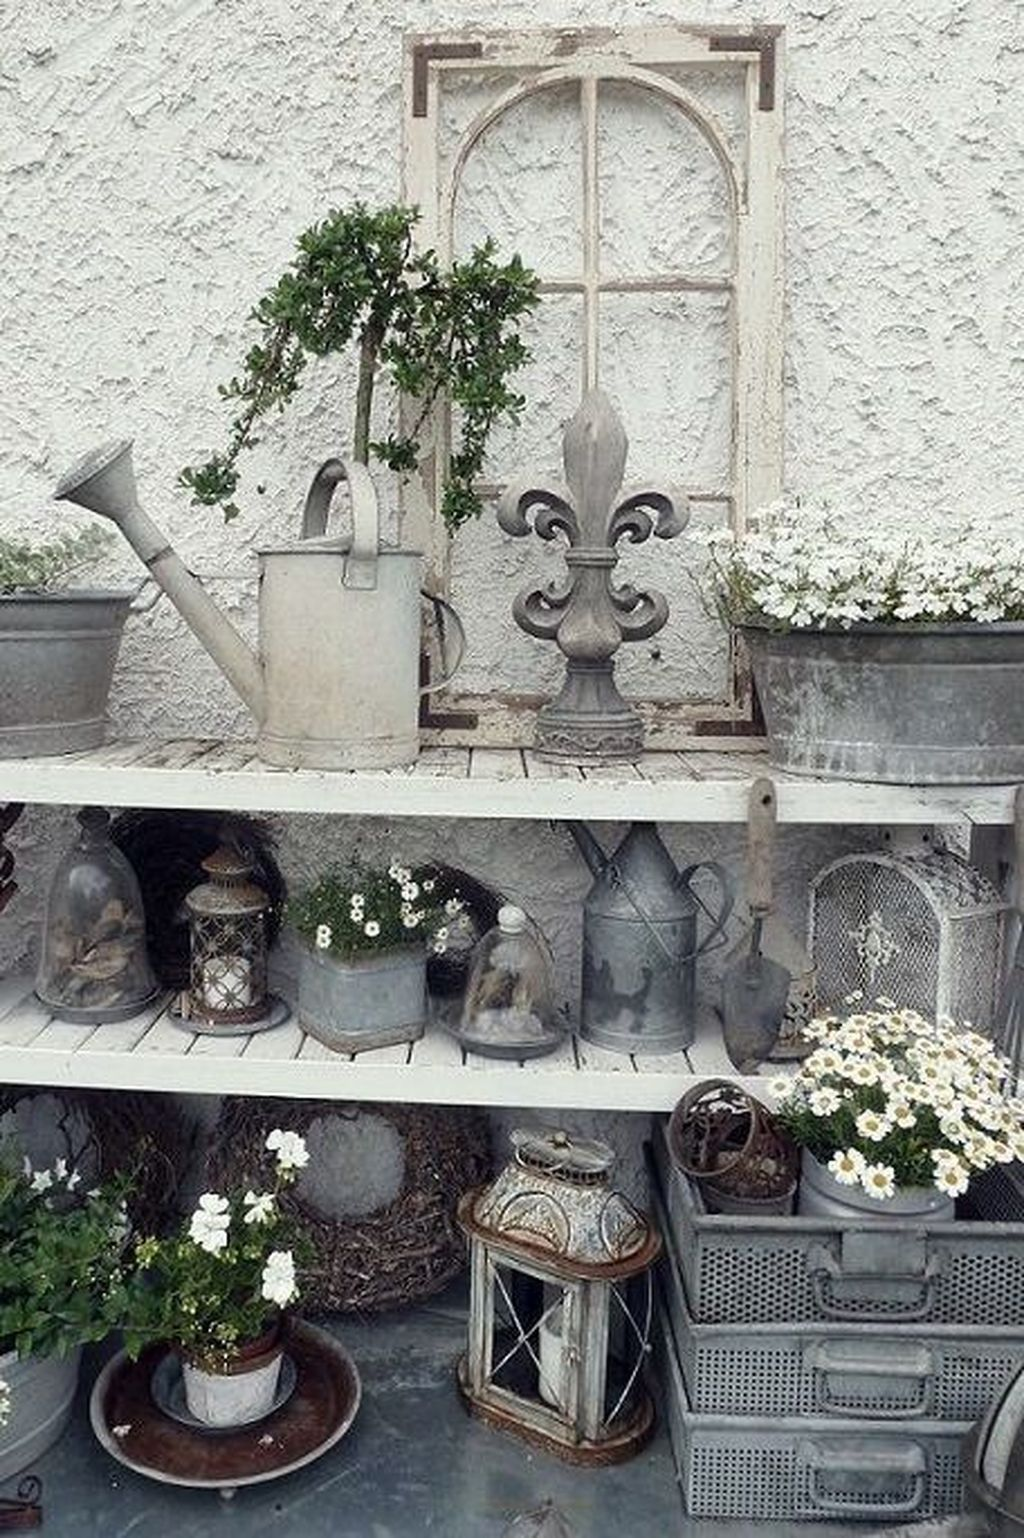 40 Lovely Antique Garden Decor Ideas Page 7 Of 48 With Images Diy Garden Decor Vintage Garden Decor Garden Decor